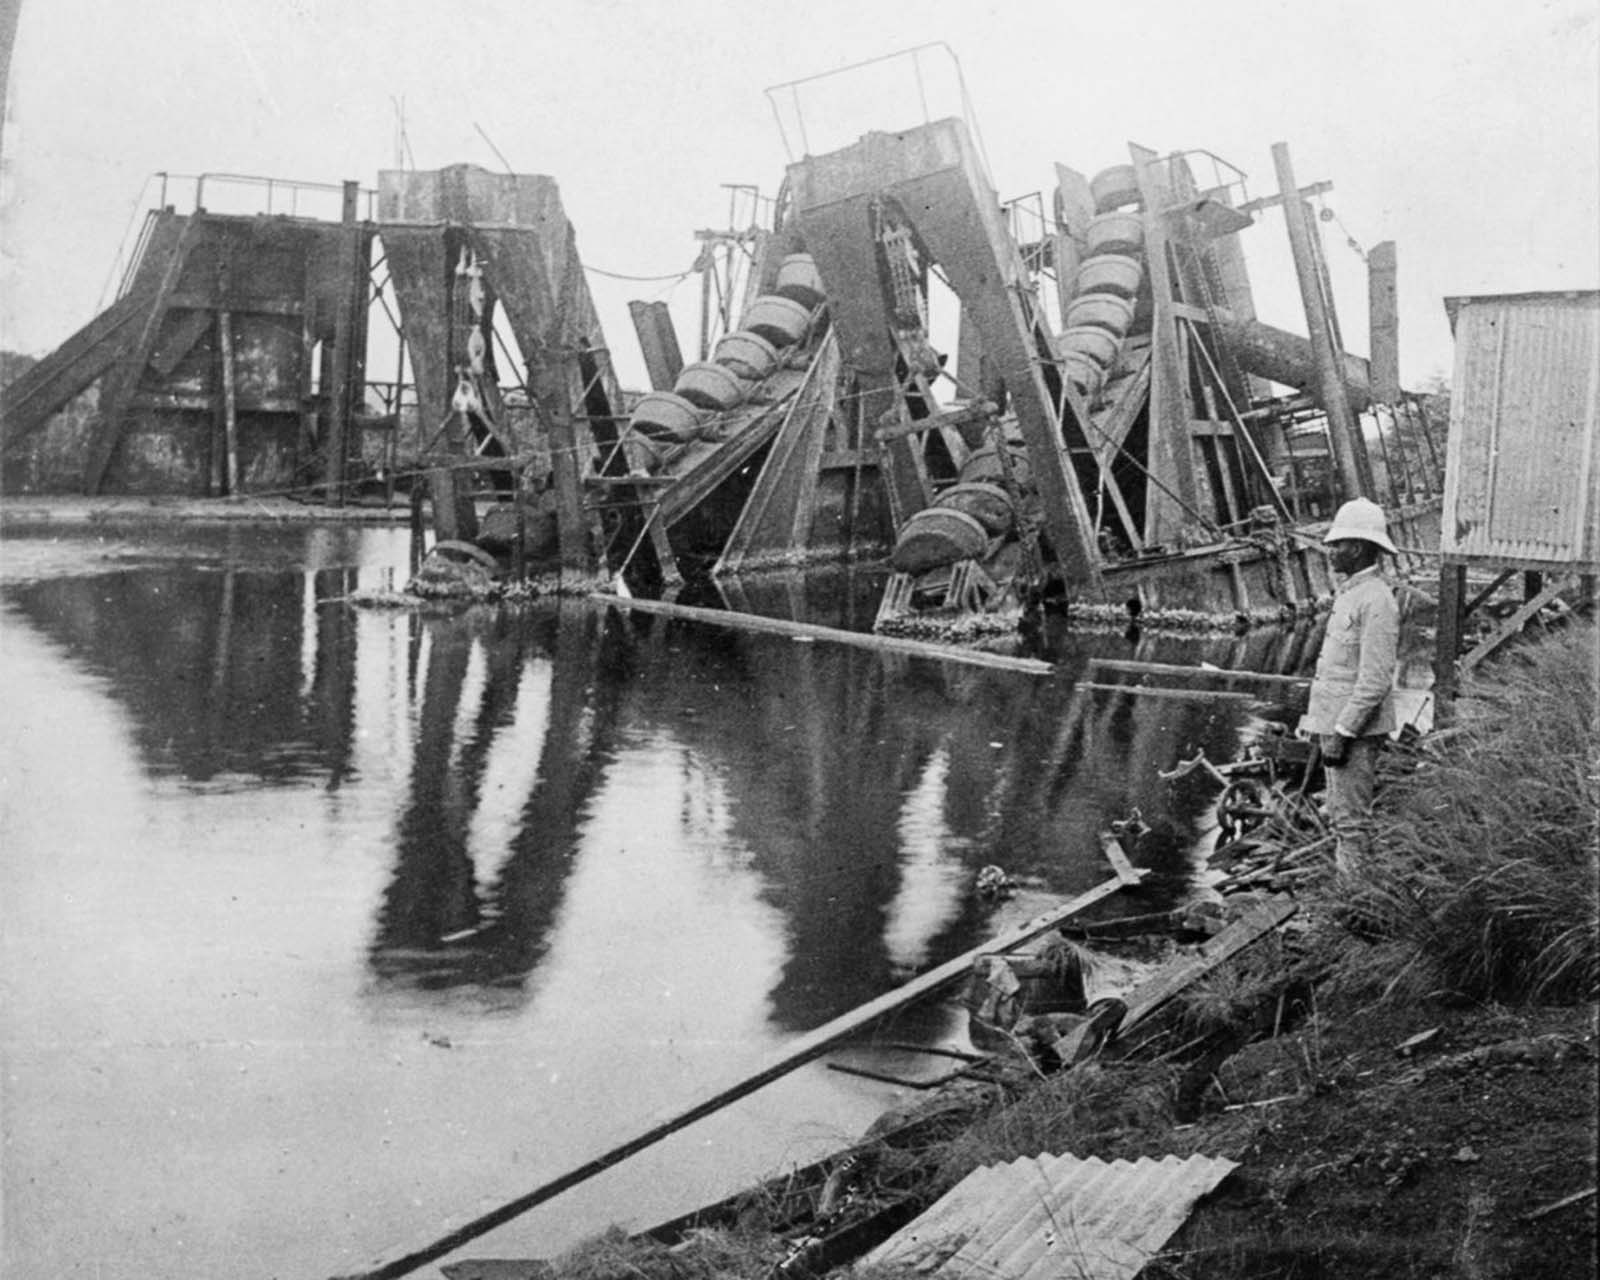 A man stands near dredging equipment abandoned by the French. 1906.